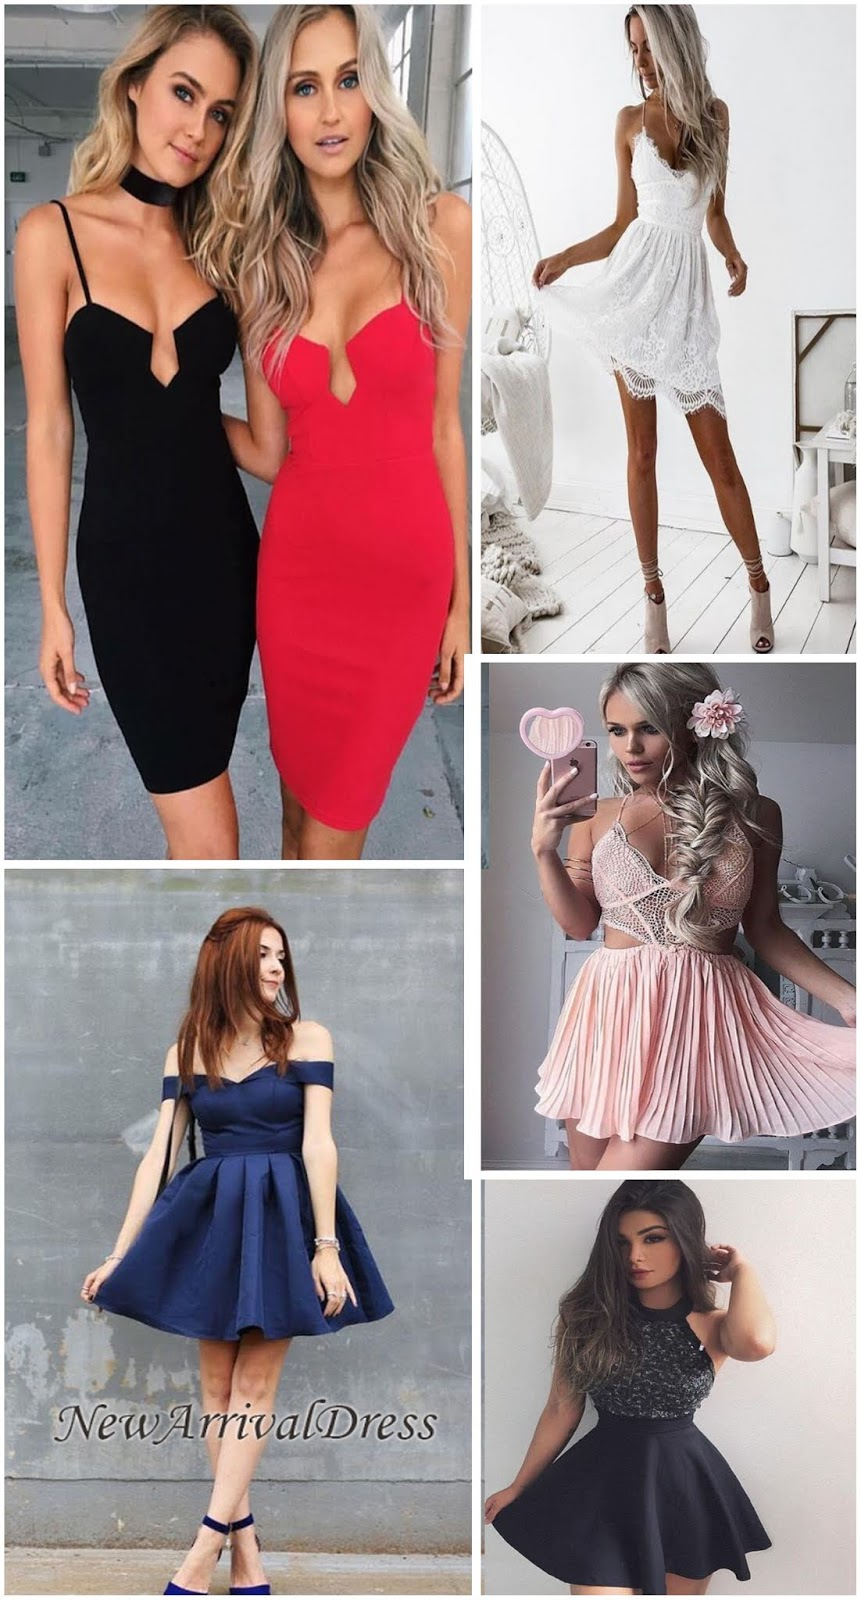 https://www.newarrivaldress.com/s/cocktail-dresses-31.html?source=blogluma